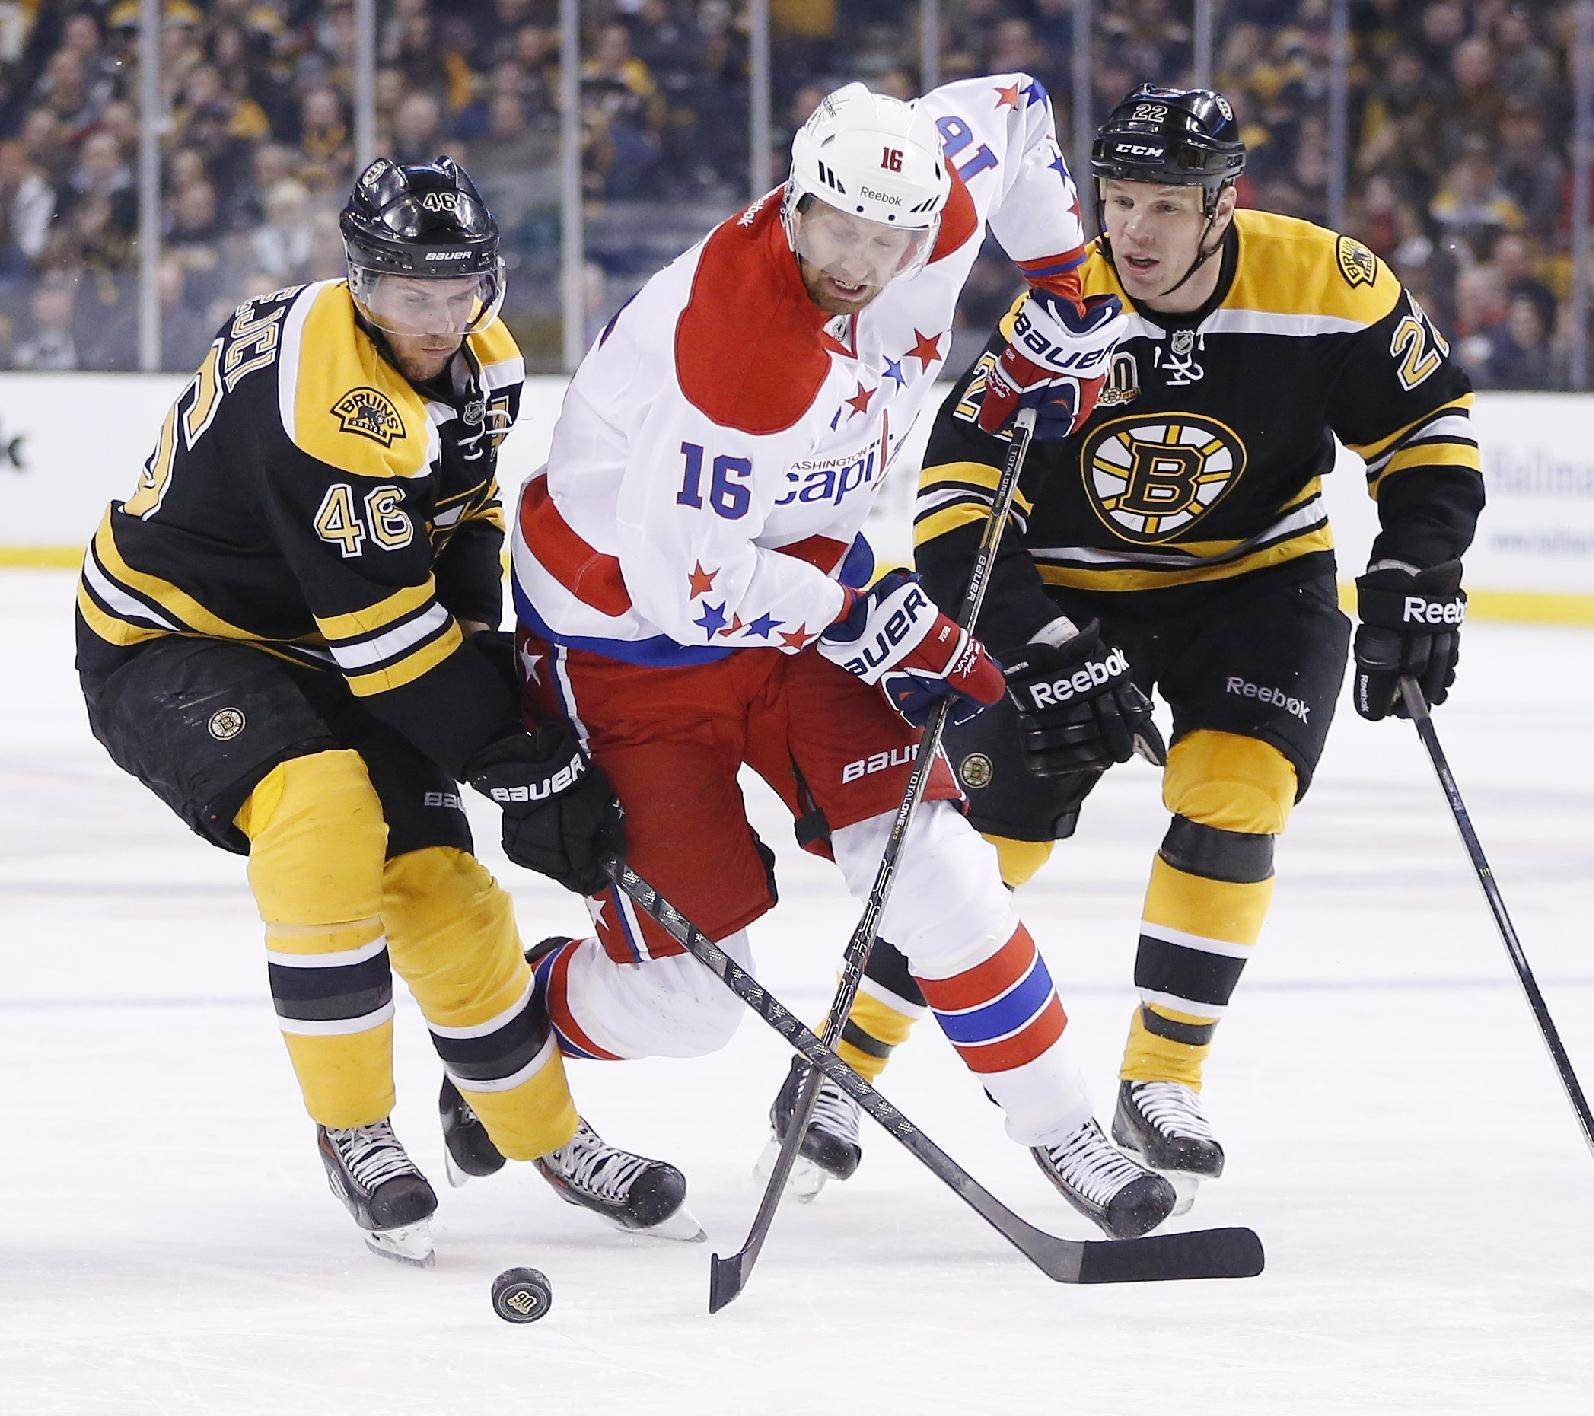 Washington Capitals' Eric Fehr (16) battles Boston Bruins' David Krejci (46) and Shawn Thornton (22) for the puck in the first period of an NHL hockey game in Boston, Saturday, March 1, 2014